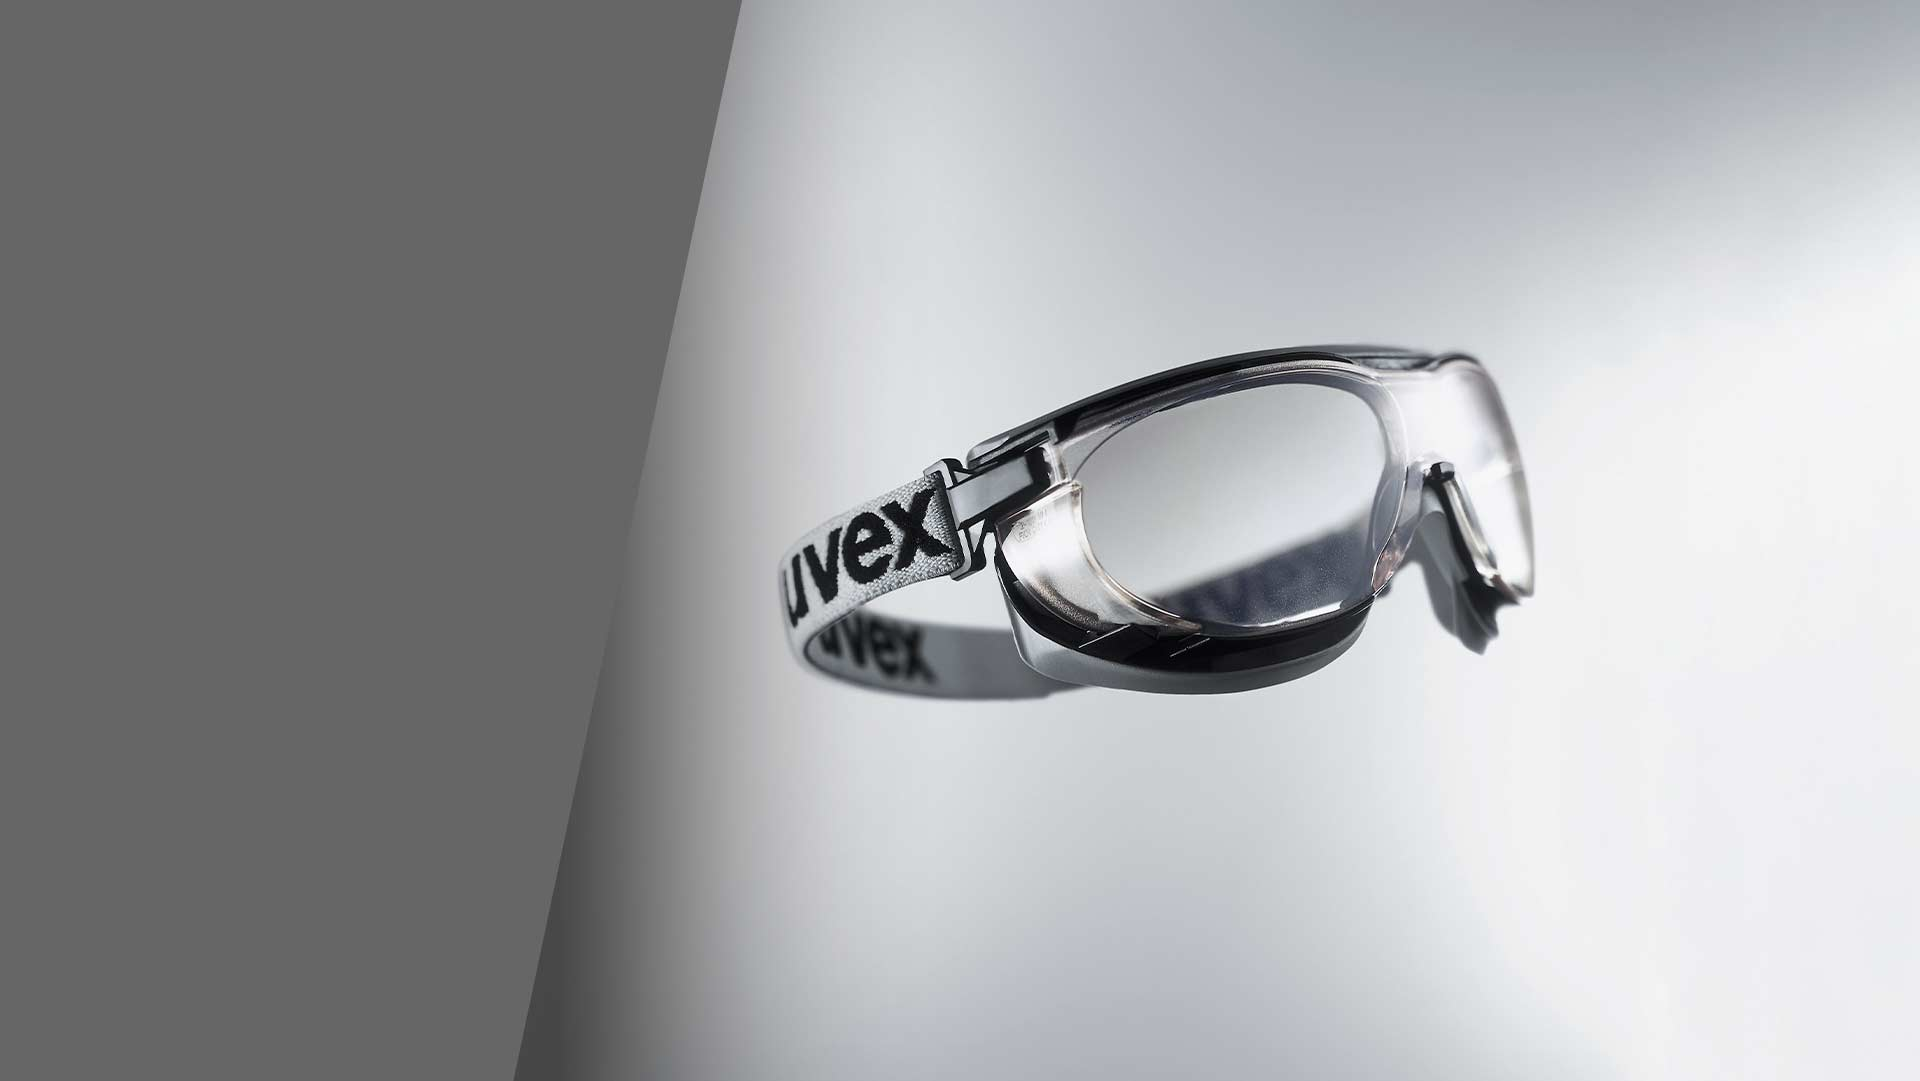 Sealed safety eyewear from uvex